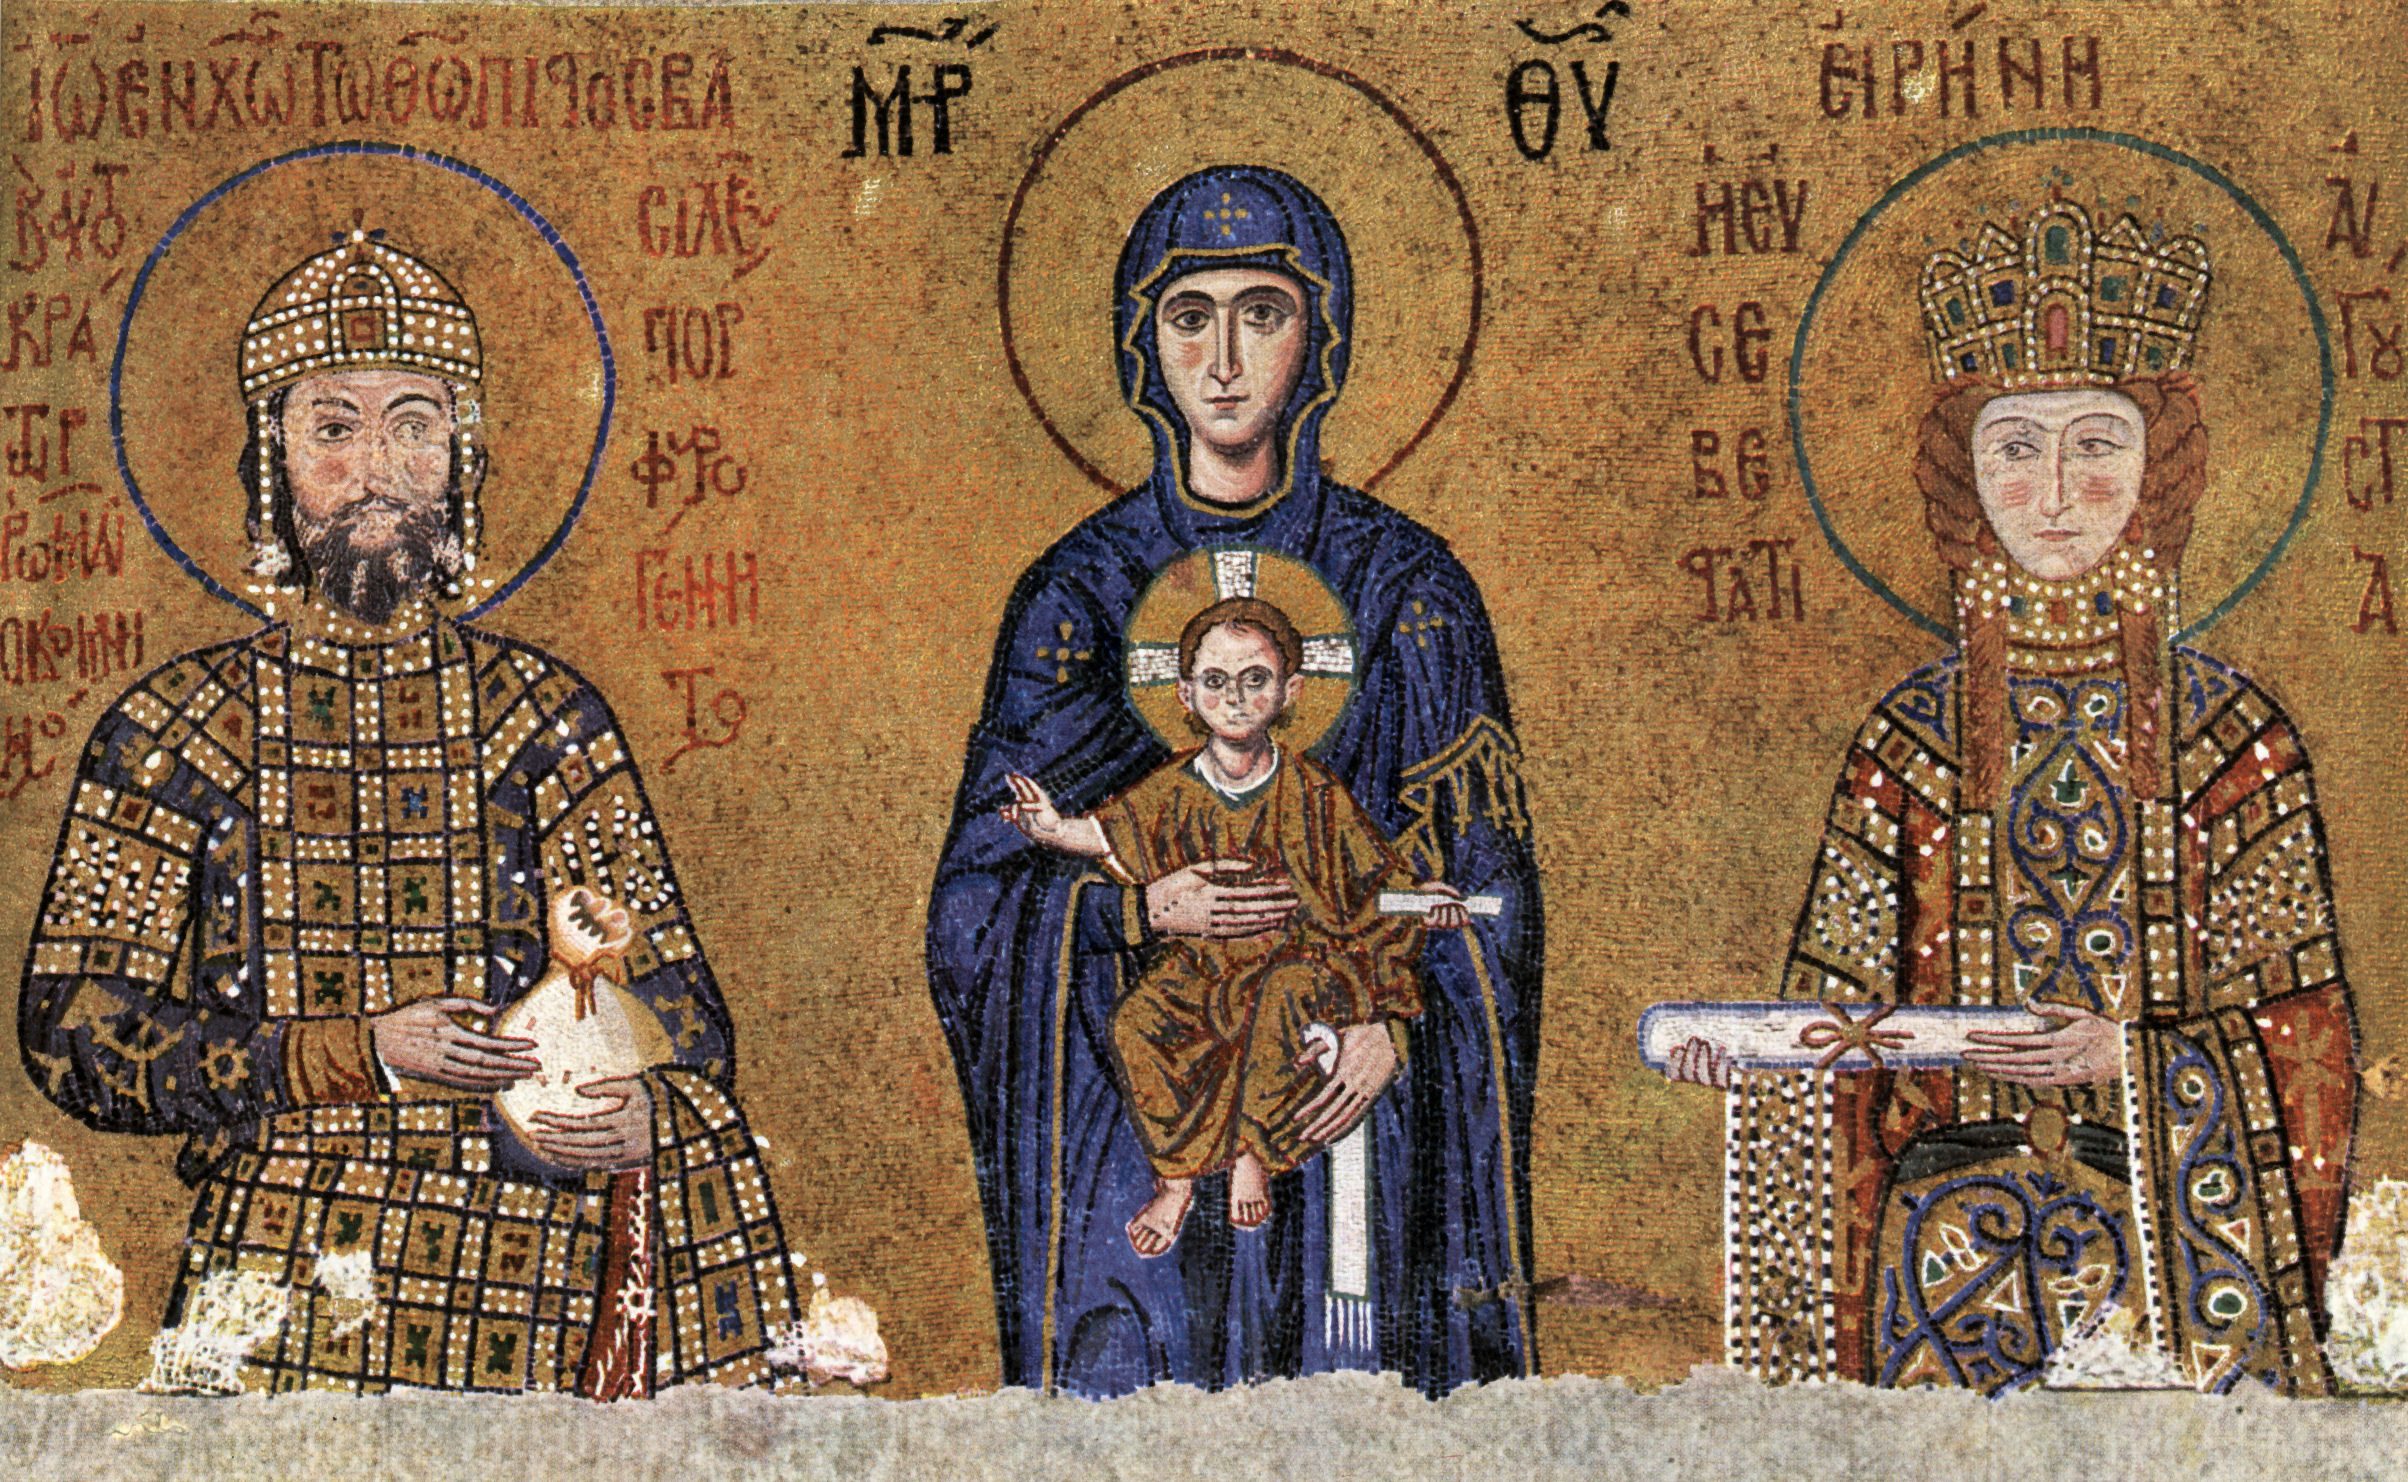 https://upload.wikimedia.org/wikipedia/commons/1/18/Haghia_Sophia_virgin_irene_john2.jpg